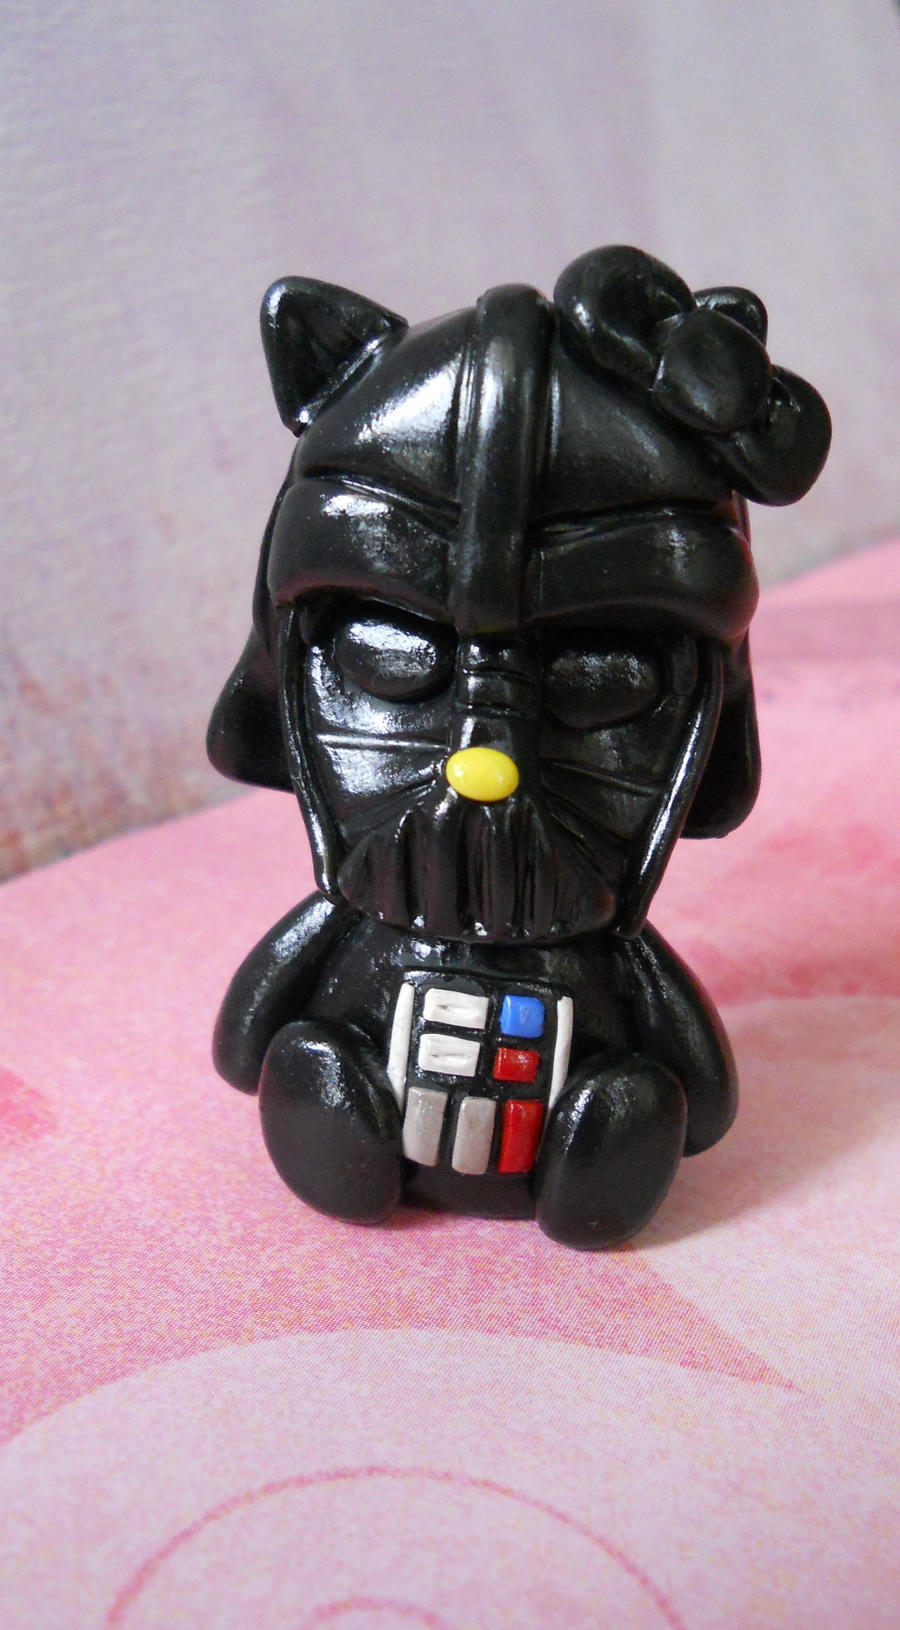 Darth vader hello kitty sculpture by rude and reckless on - Dark vador hello kitty ...